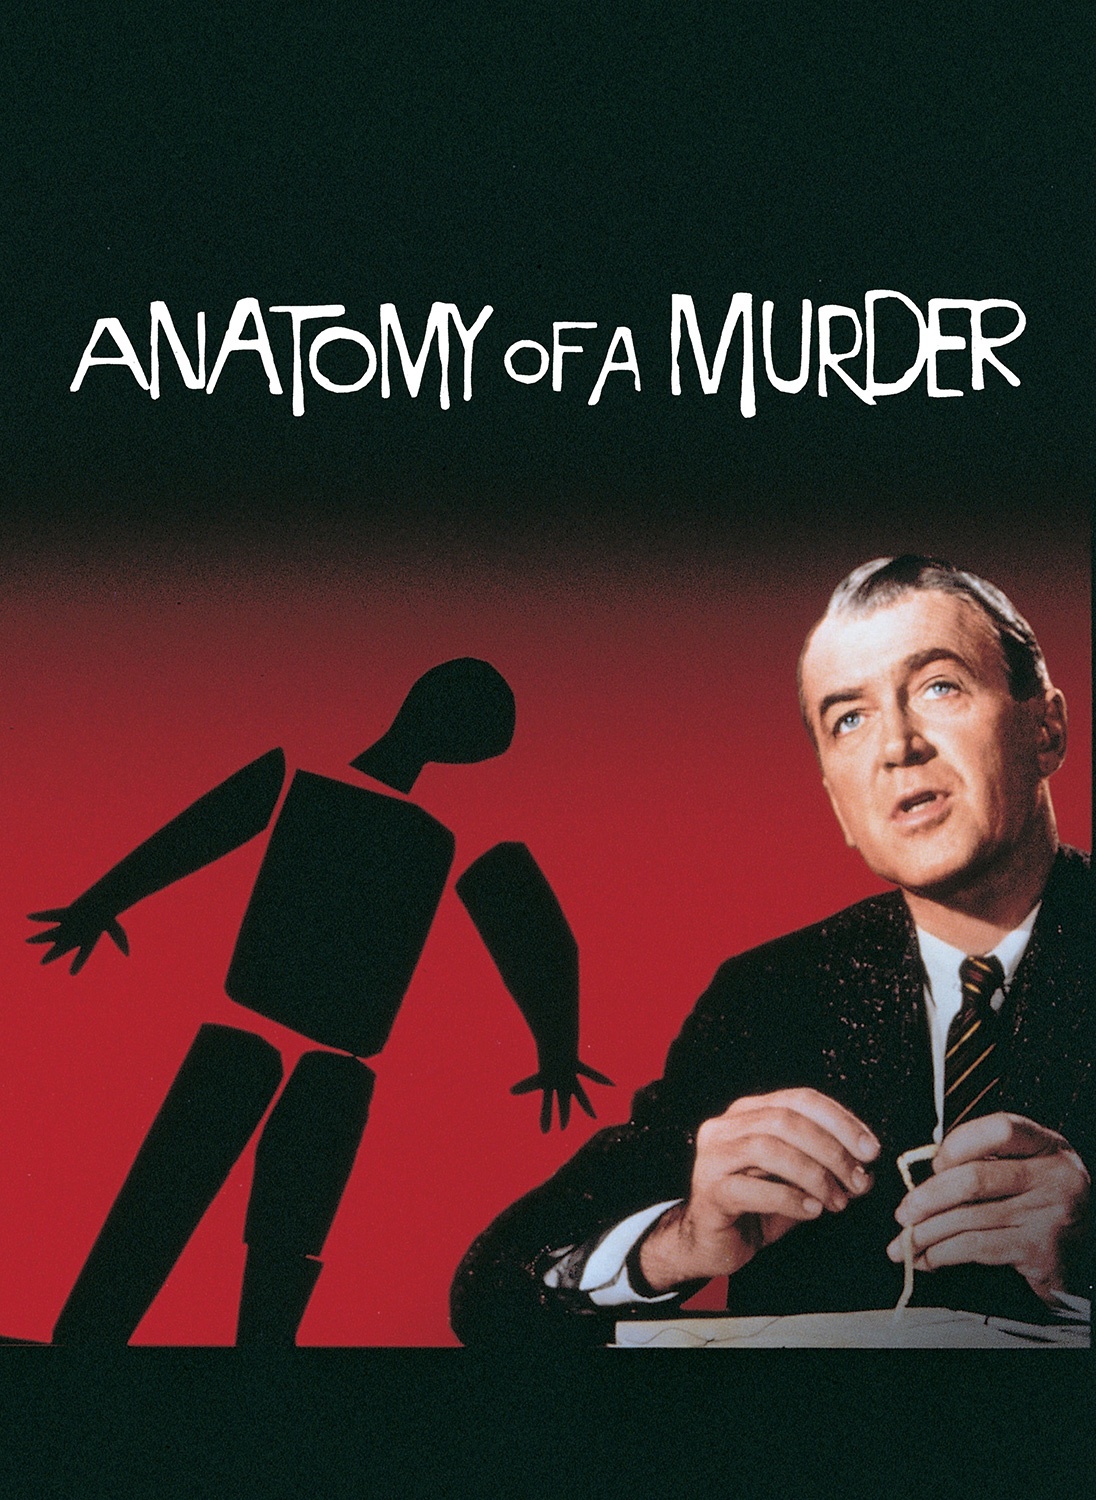 Anatomy of a Murder | Sony Pictures Museum